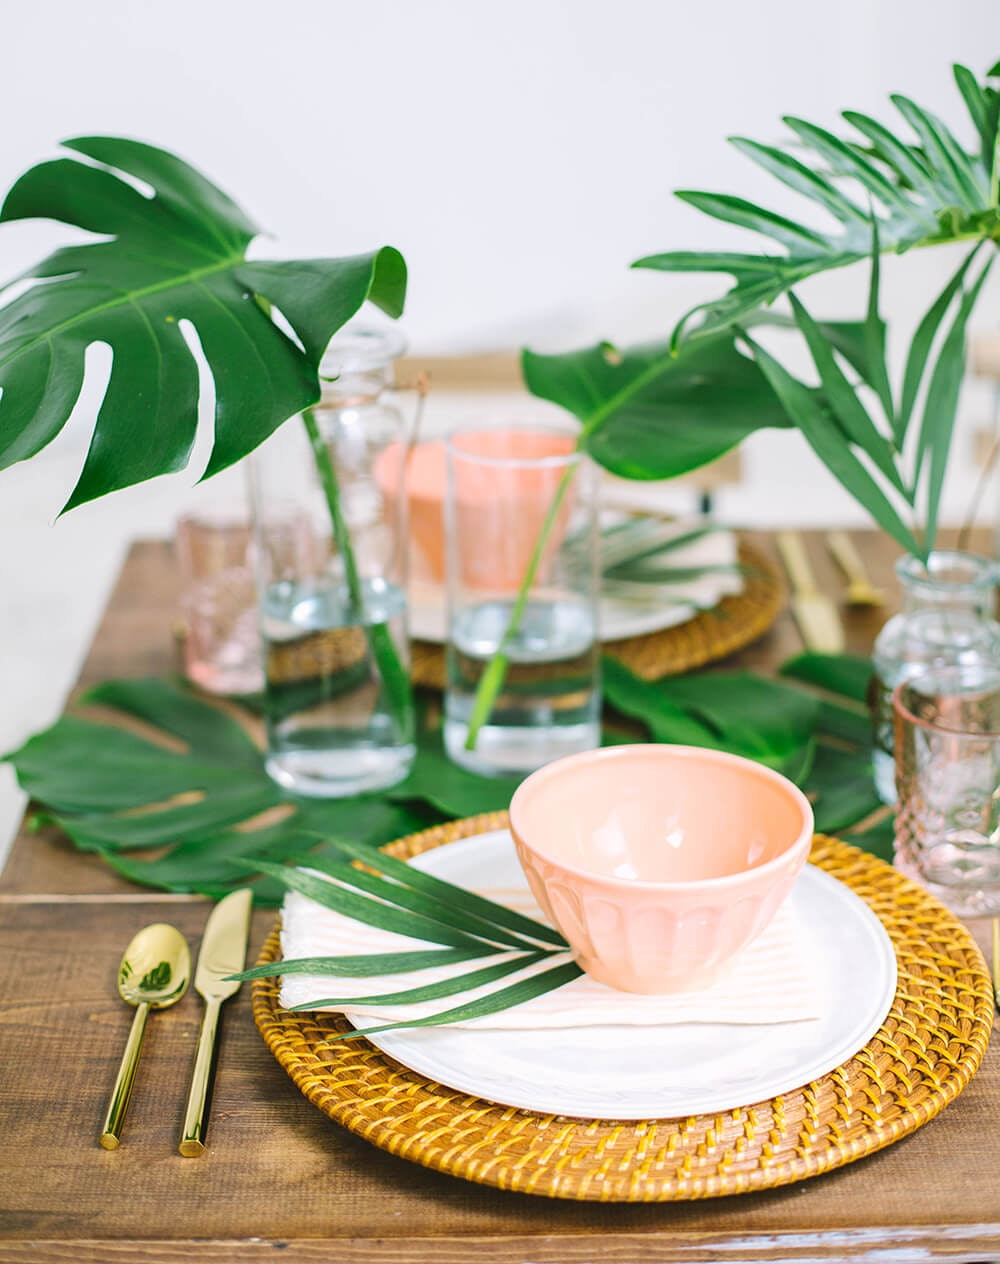 7 Summer Table Settings To Inspire Your Next Outdoor Party